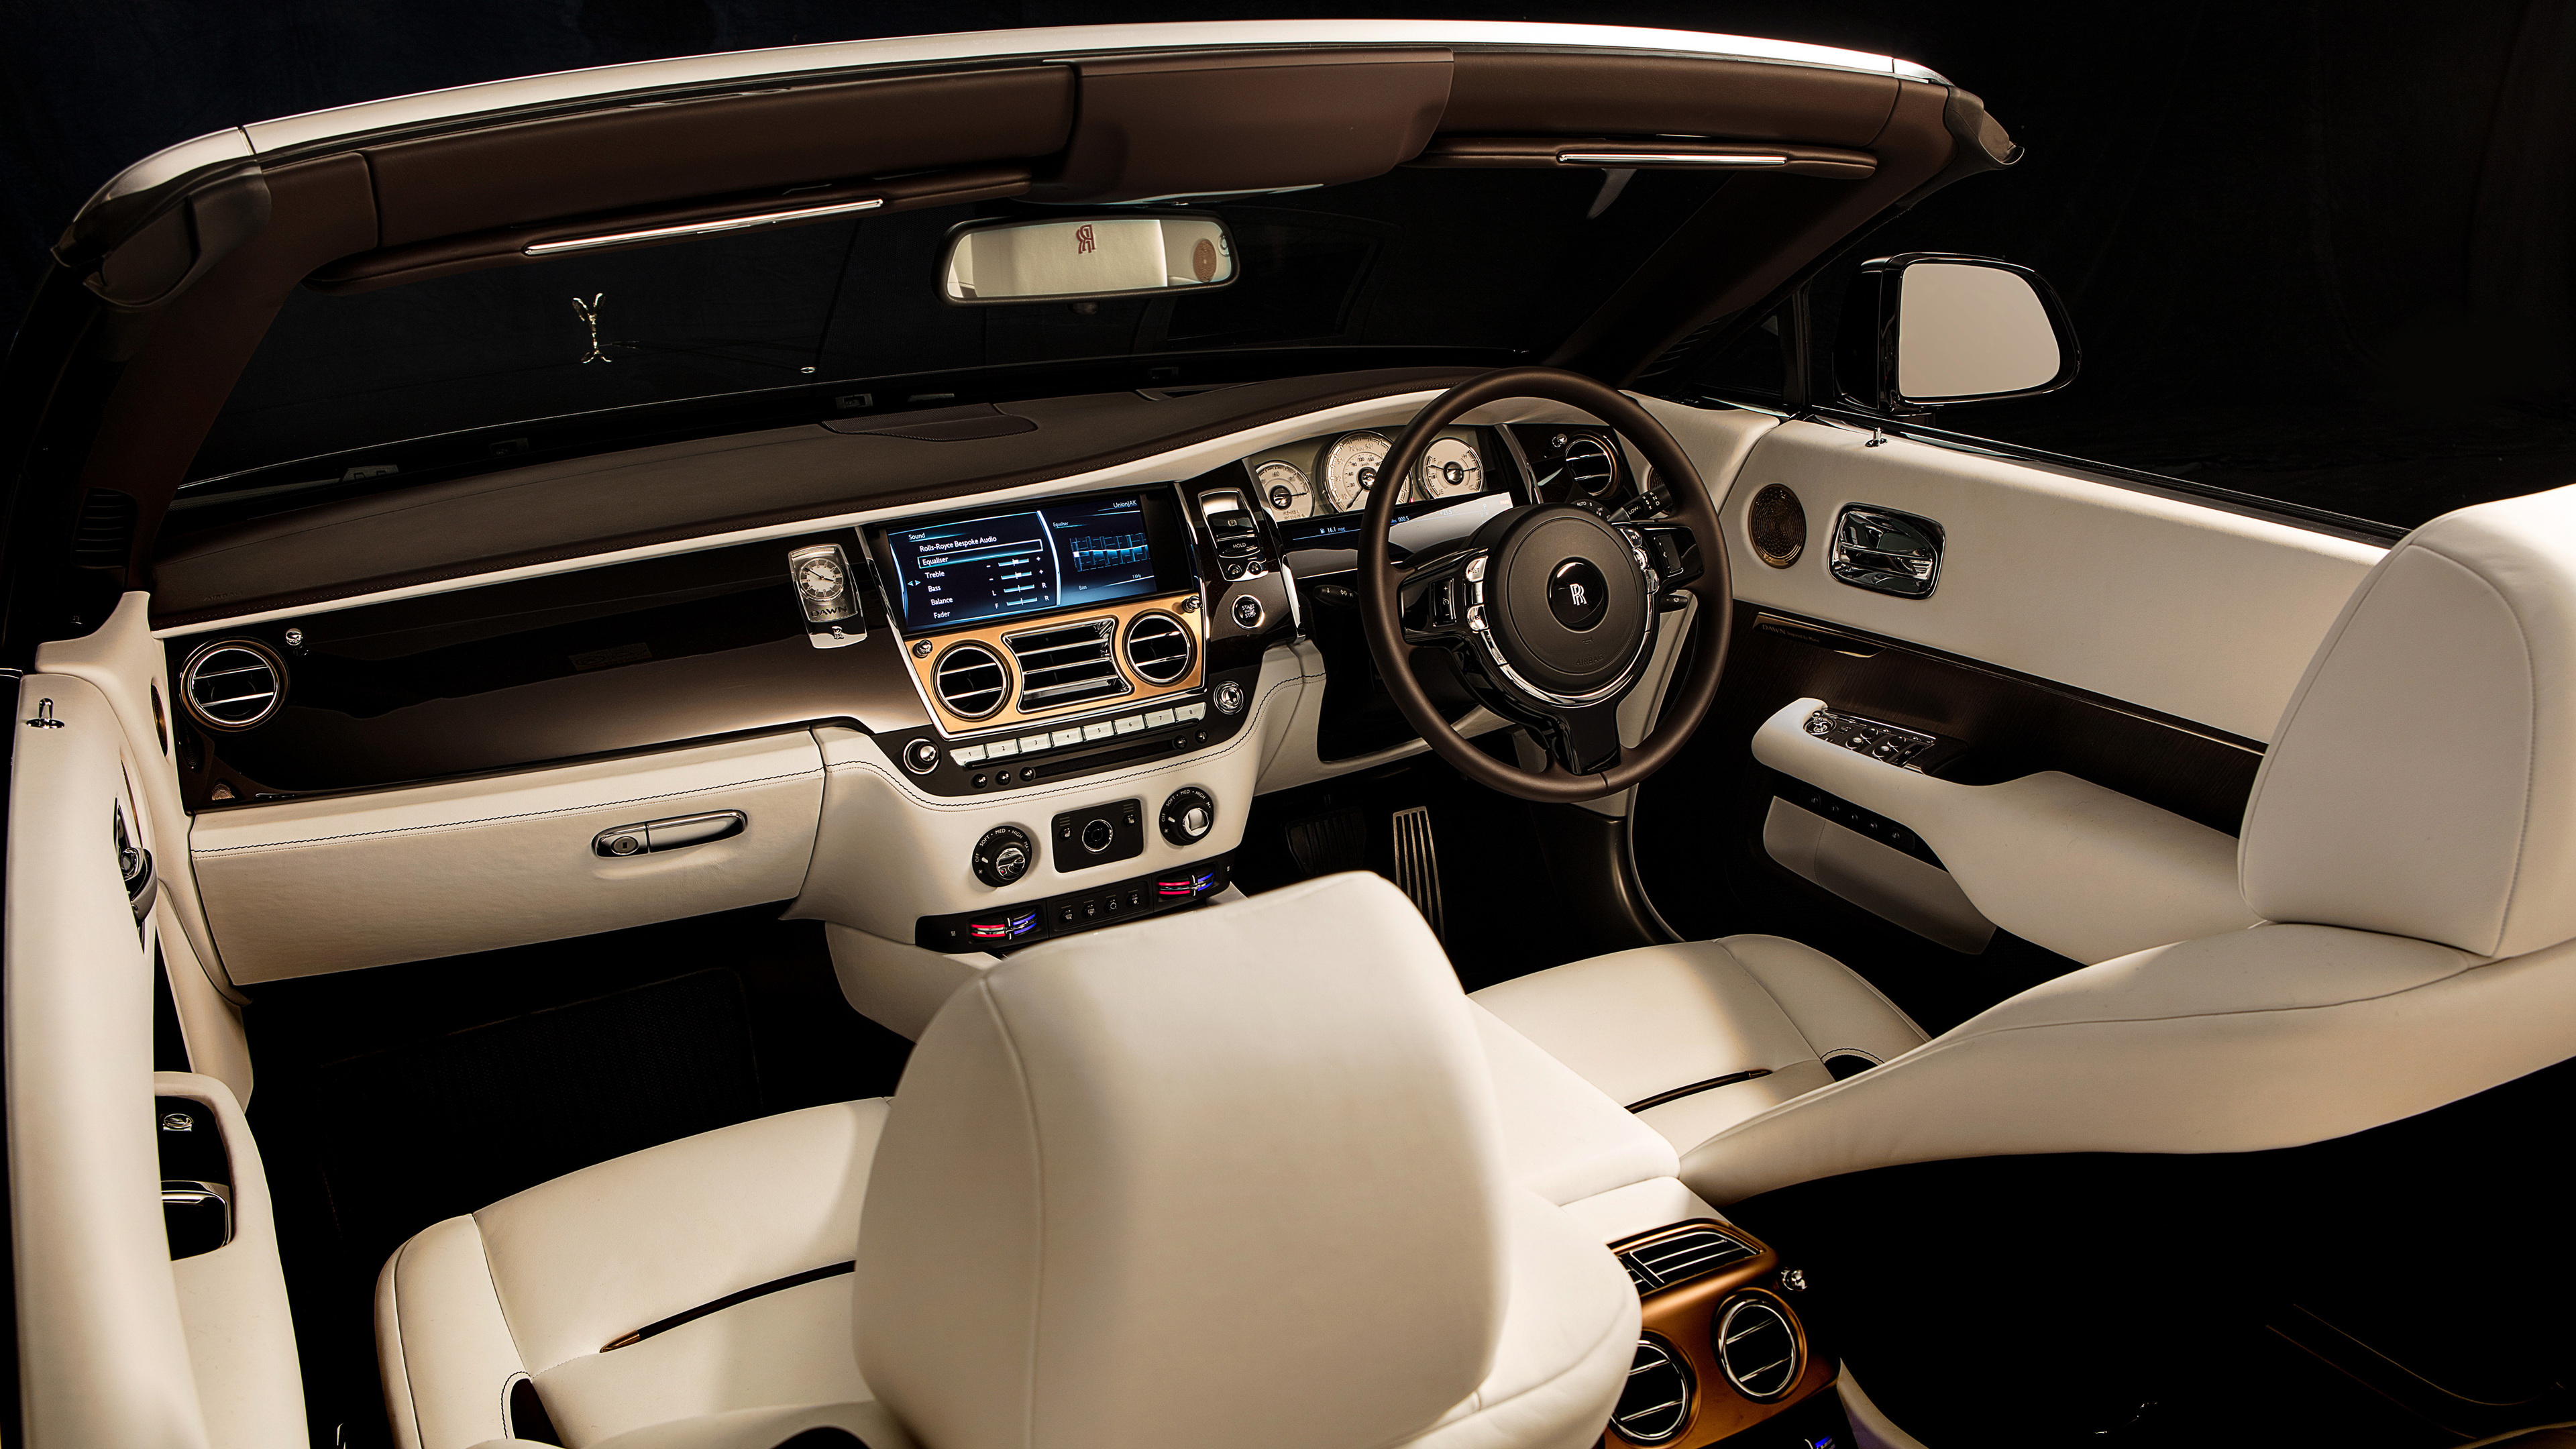 rolls royce dawn inspired by music 2018 interior 1539111428 - Rolls Royce Dawn Inspired By Music 2018 Interior - rolls royce wallpapers, rolls royce dawn wallpapers, hd-wallpapers, cars wallpapers, 4k-wallpapers, 2018 cars wallpapers